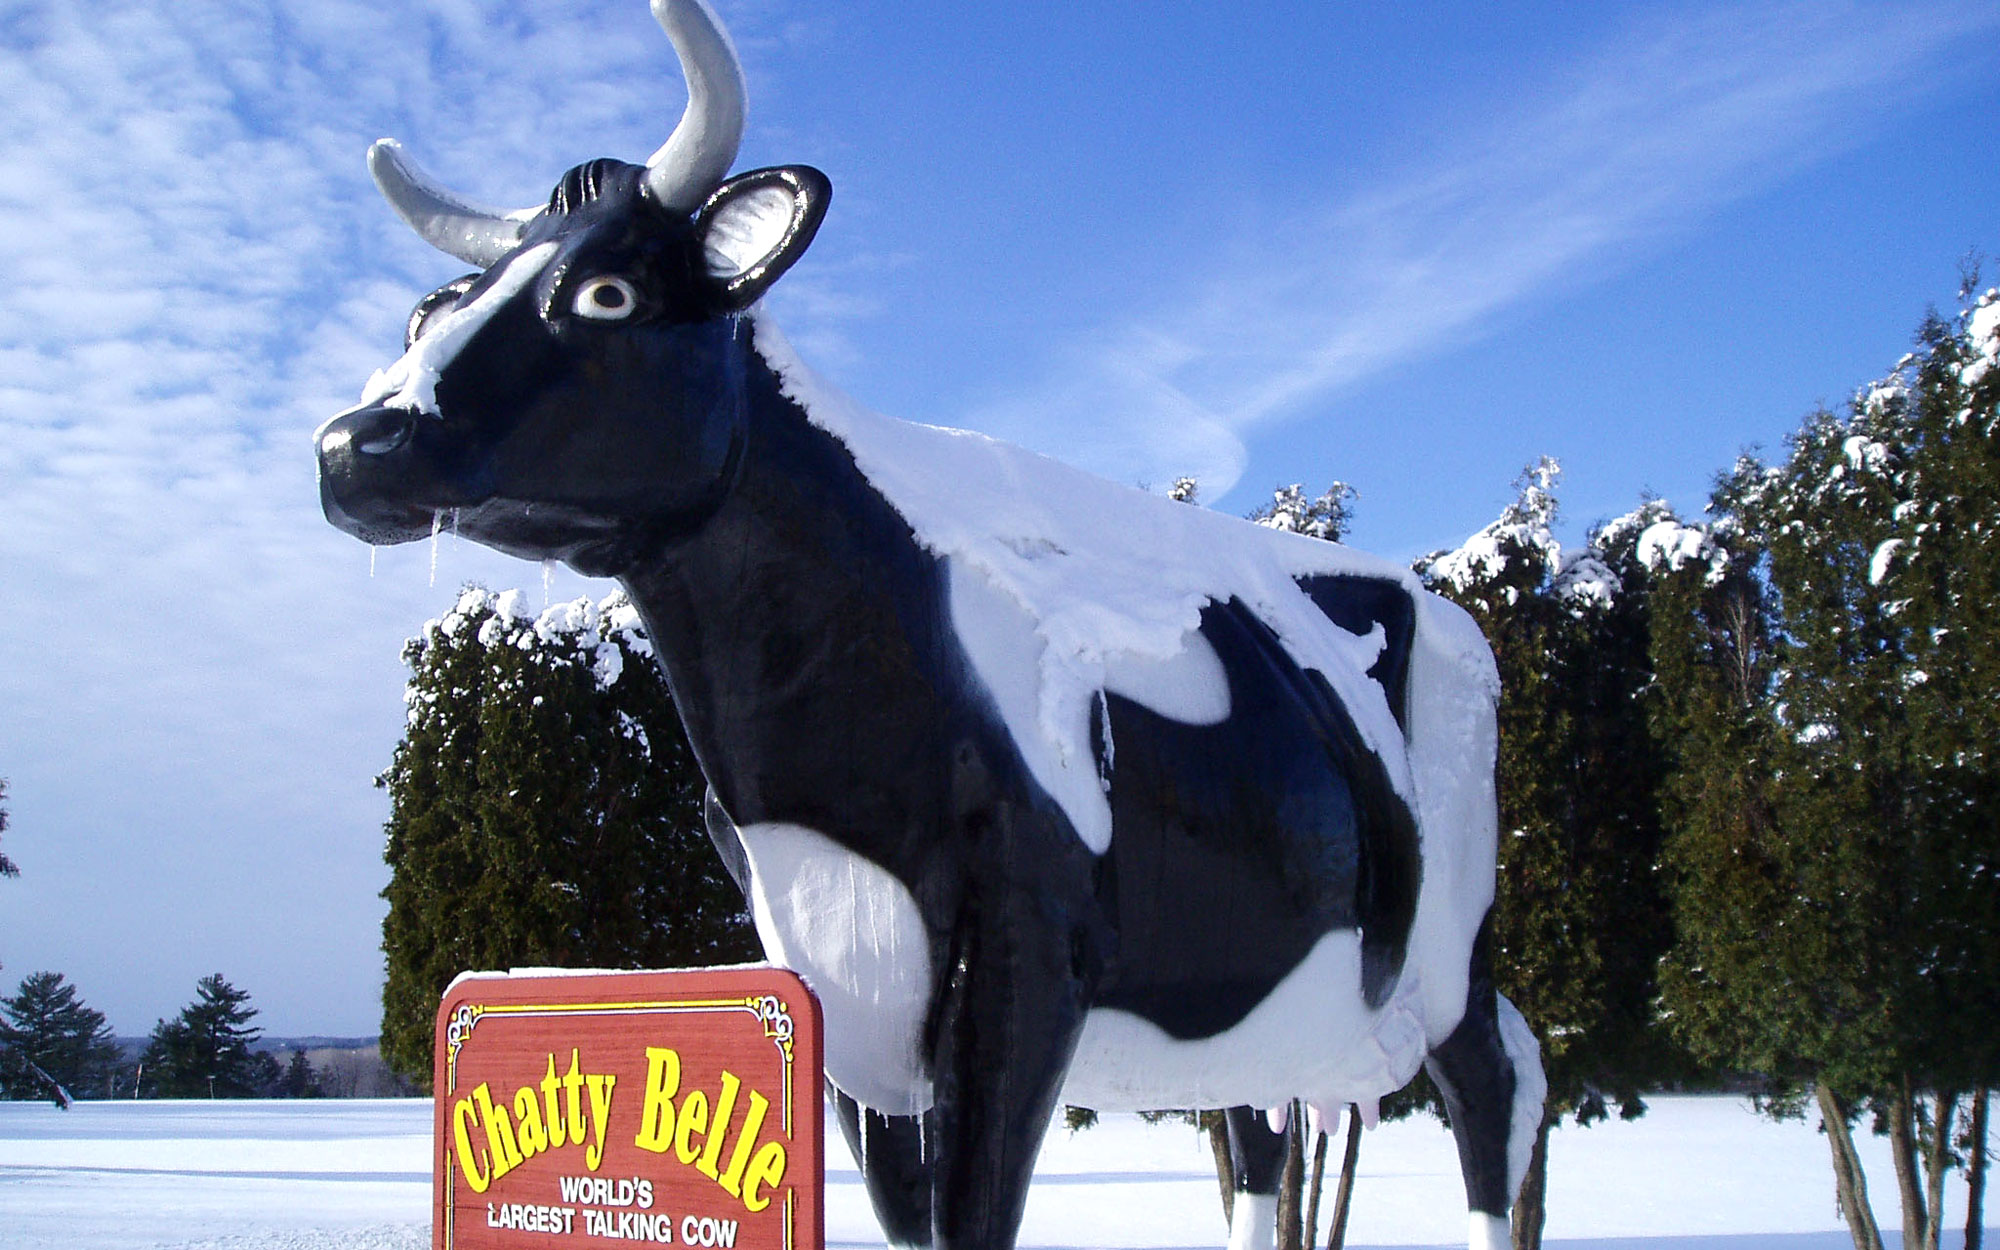 Weirdest Roadside Attractions: Wisconsin: Chatty Belle, World's Largest Talking Cow